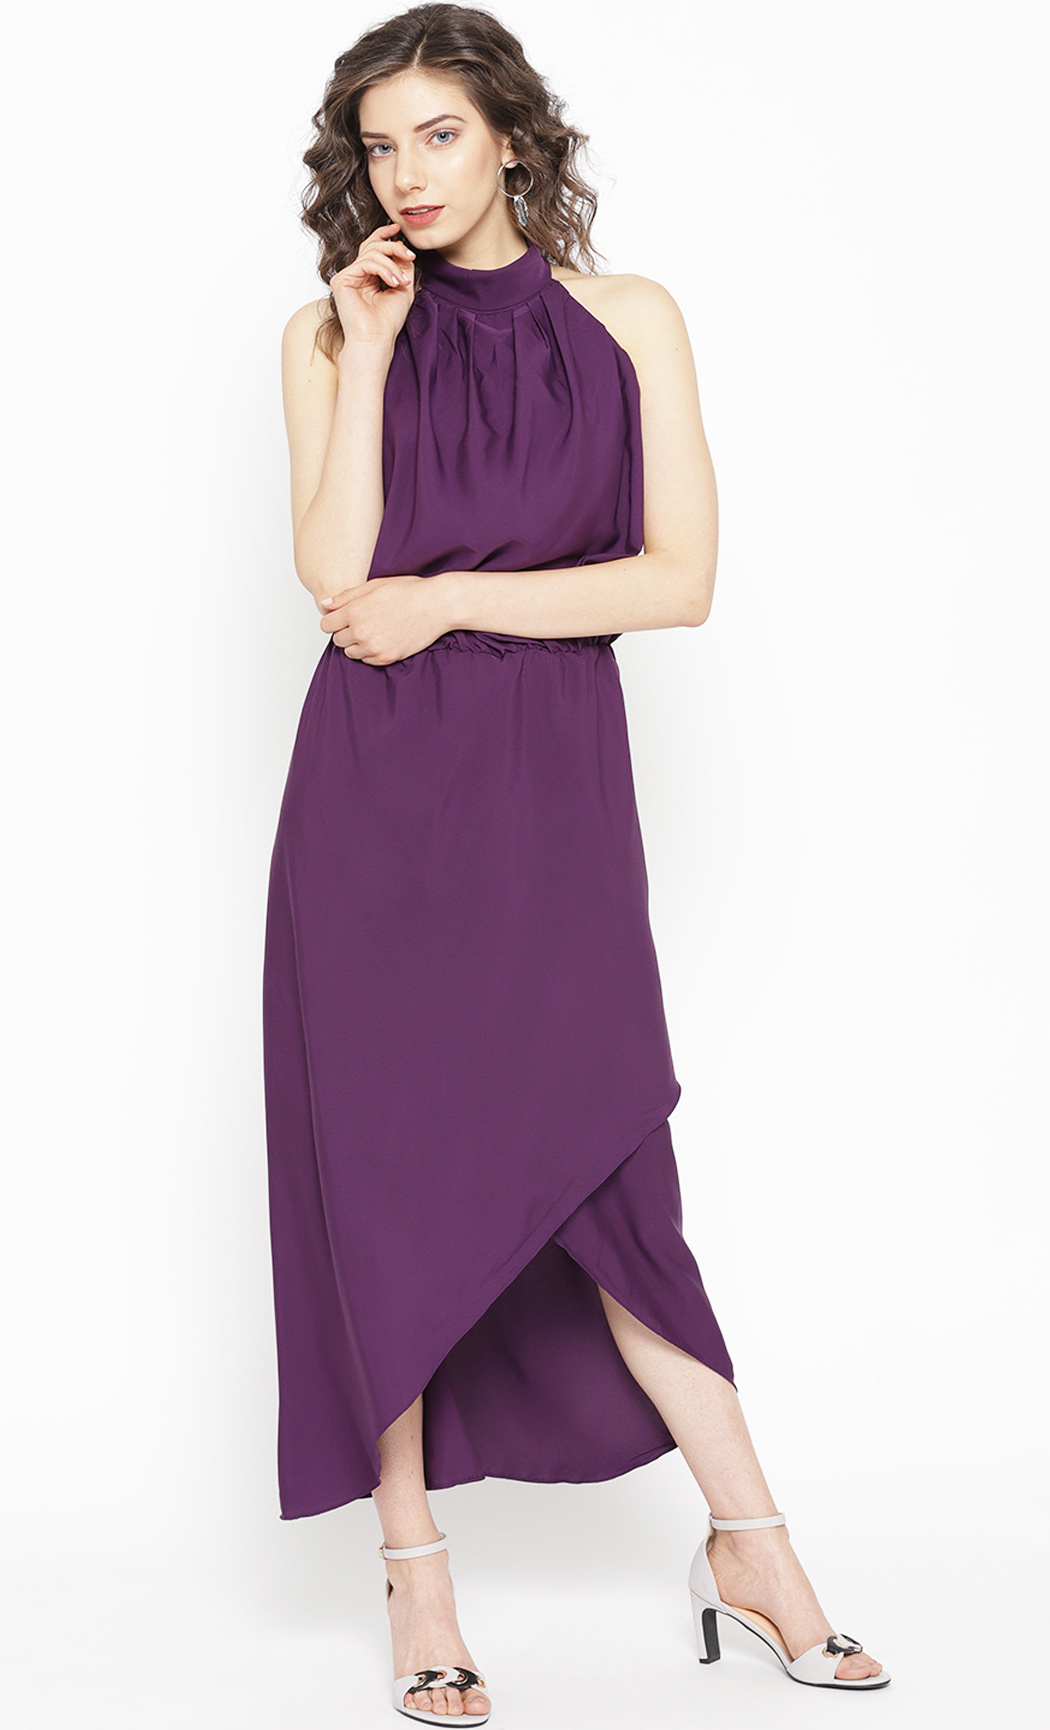 Purple Evening Party Backless Halter Neck Dress. Buy Online